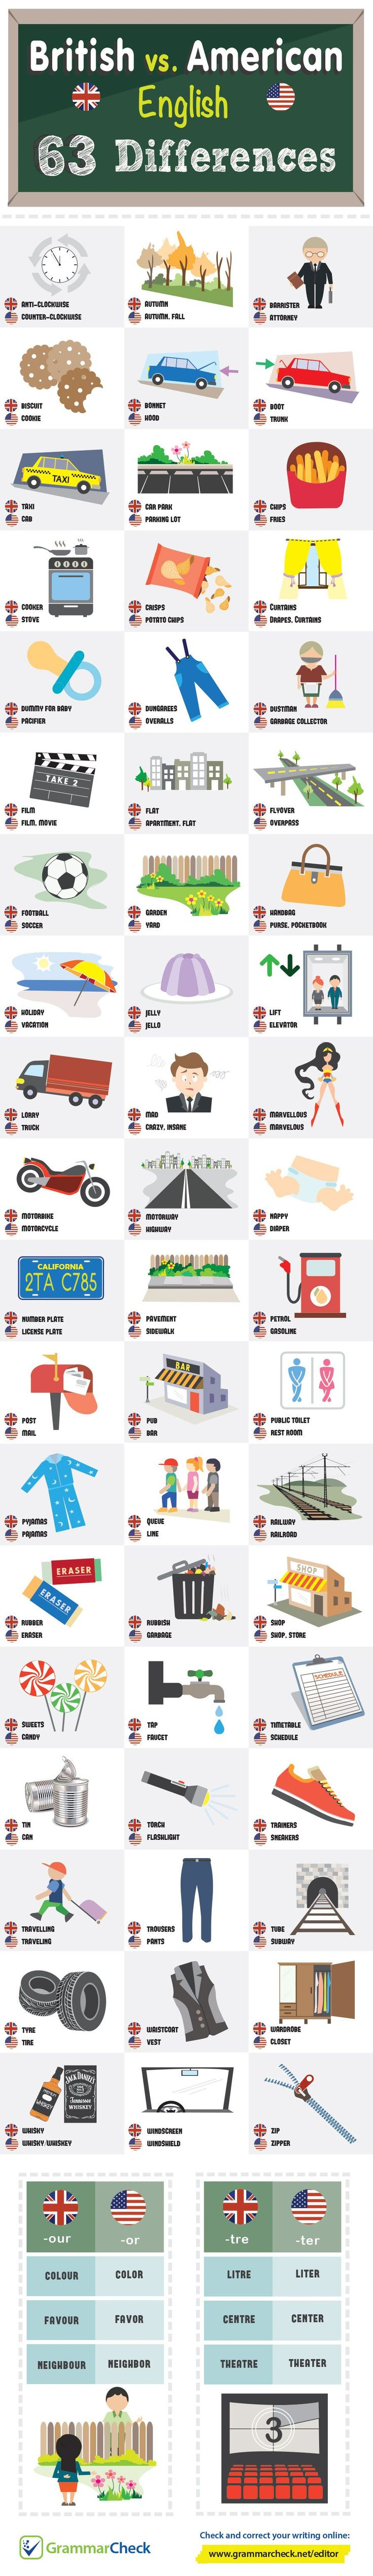 "Upon my recent discovery that, in England, ""English muffins"" are merely dubbed ""muffins"" (I know), my curiosity was piqued: What are some ways vocabulary may differ across the pond? This infographic comparing everyday differences in British and American English is a gem (or as the Britons call it…a gem. But I digress.)"